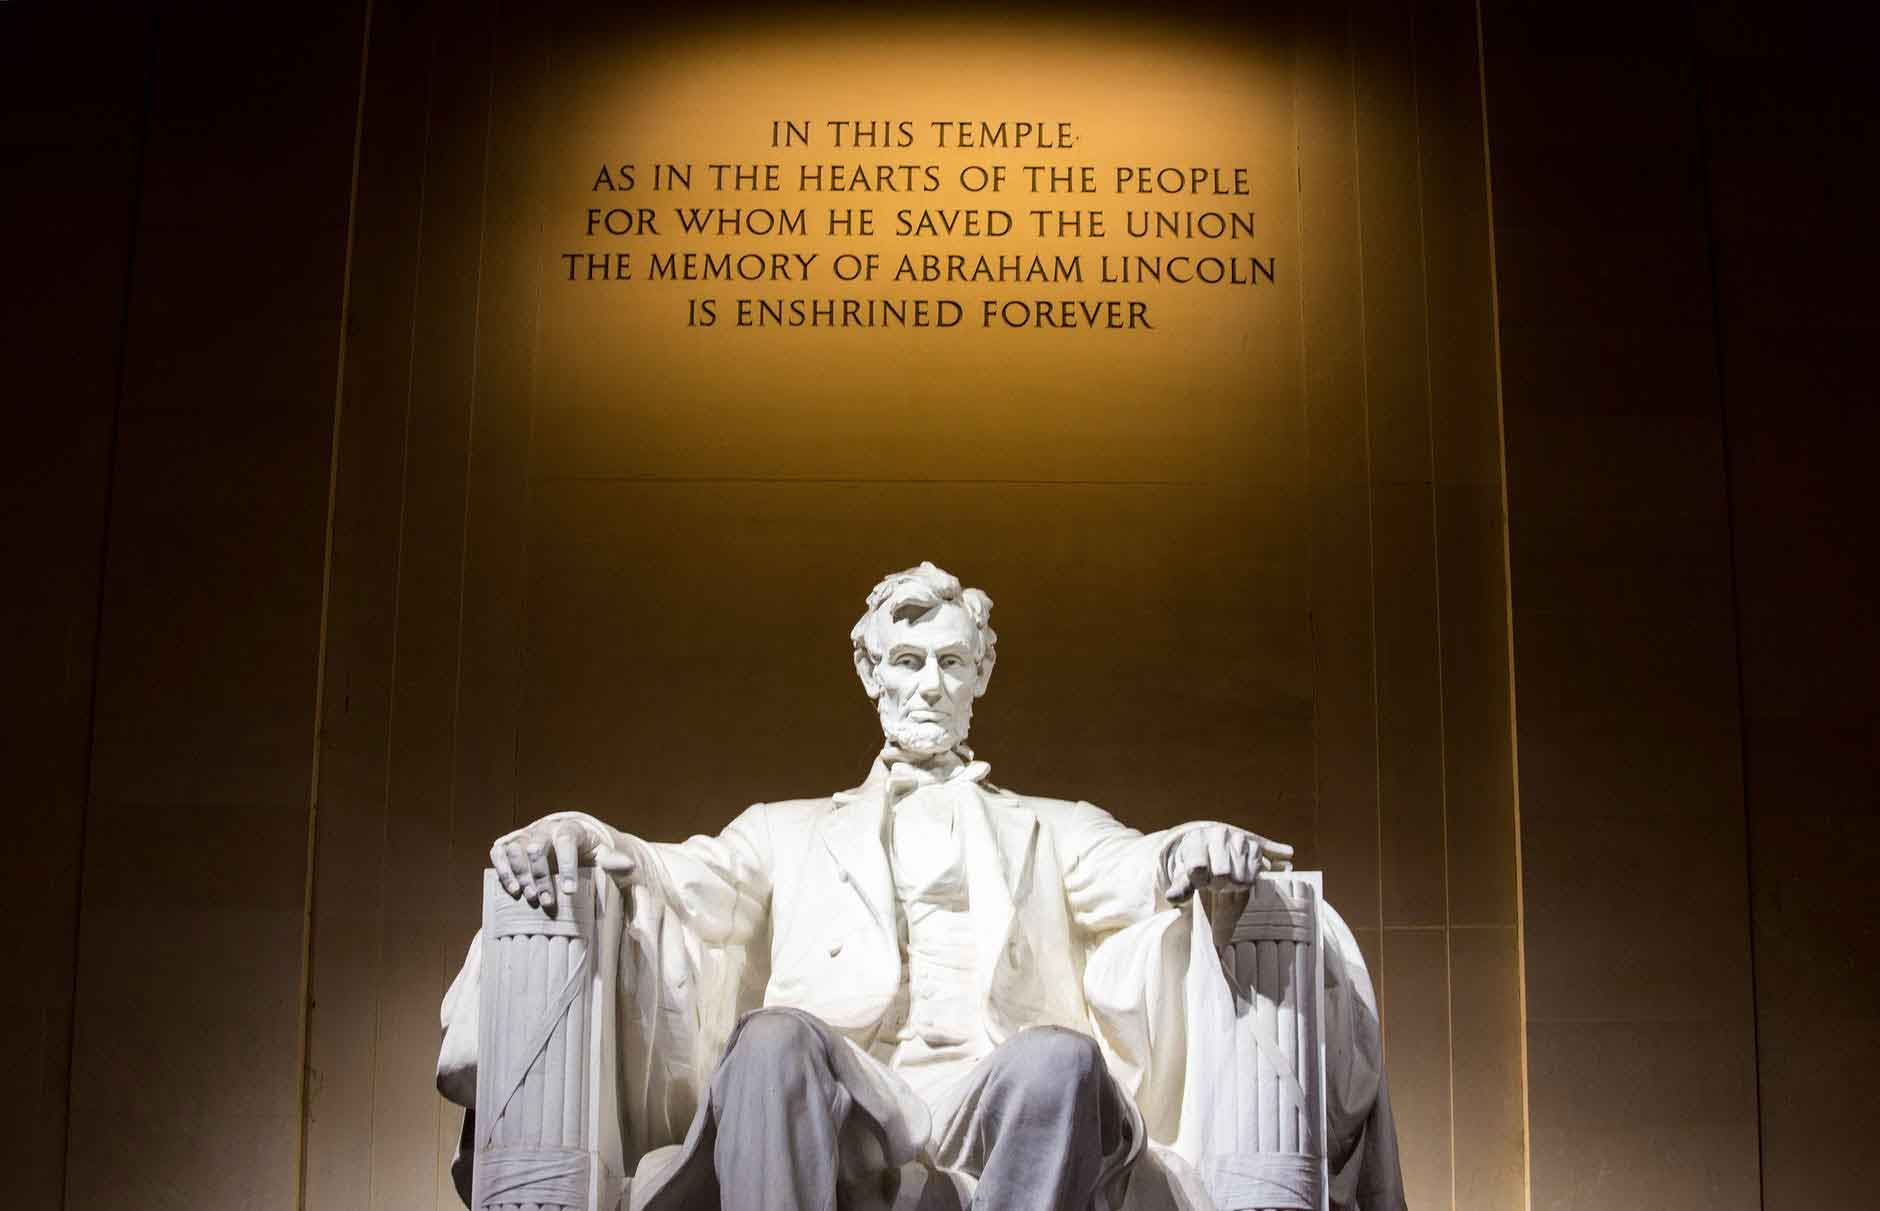 Abraham Lincoln was a key part of the Civil War